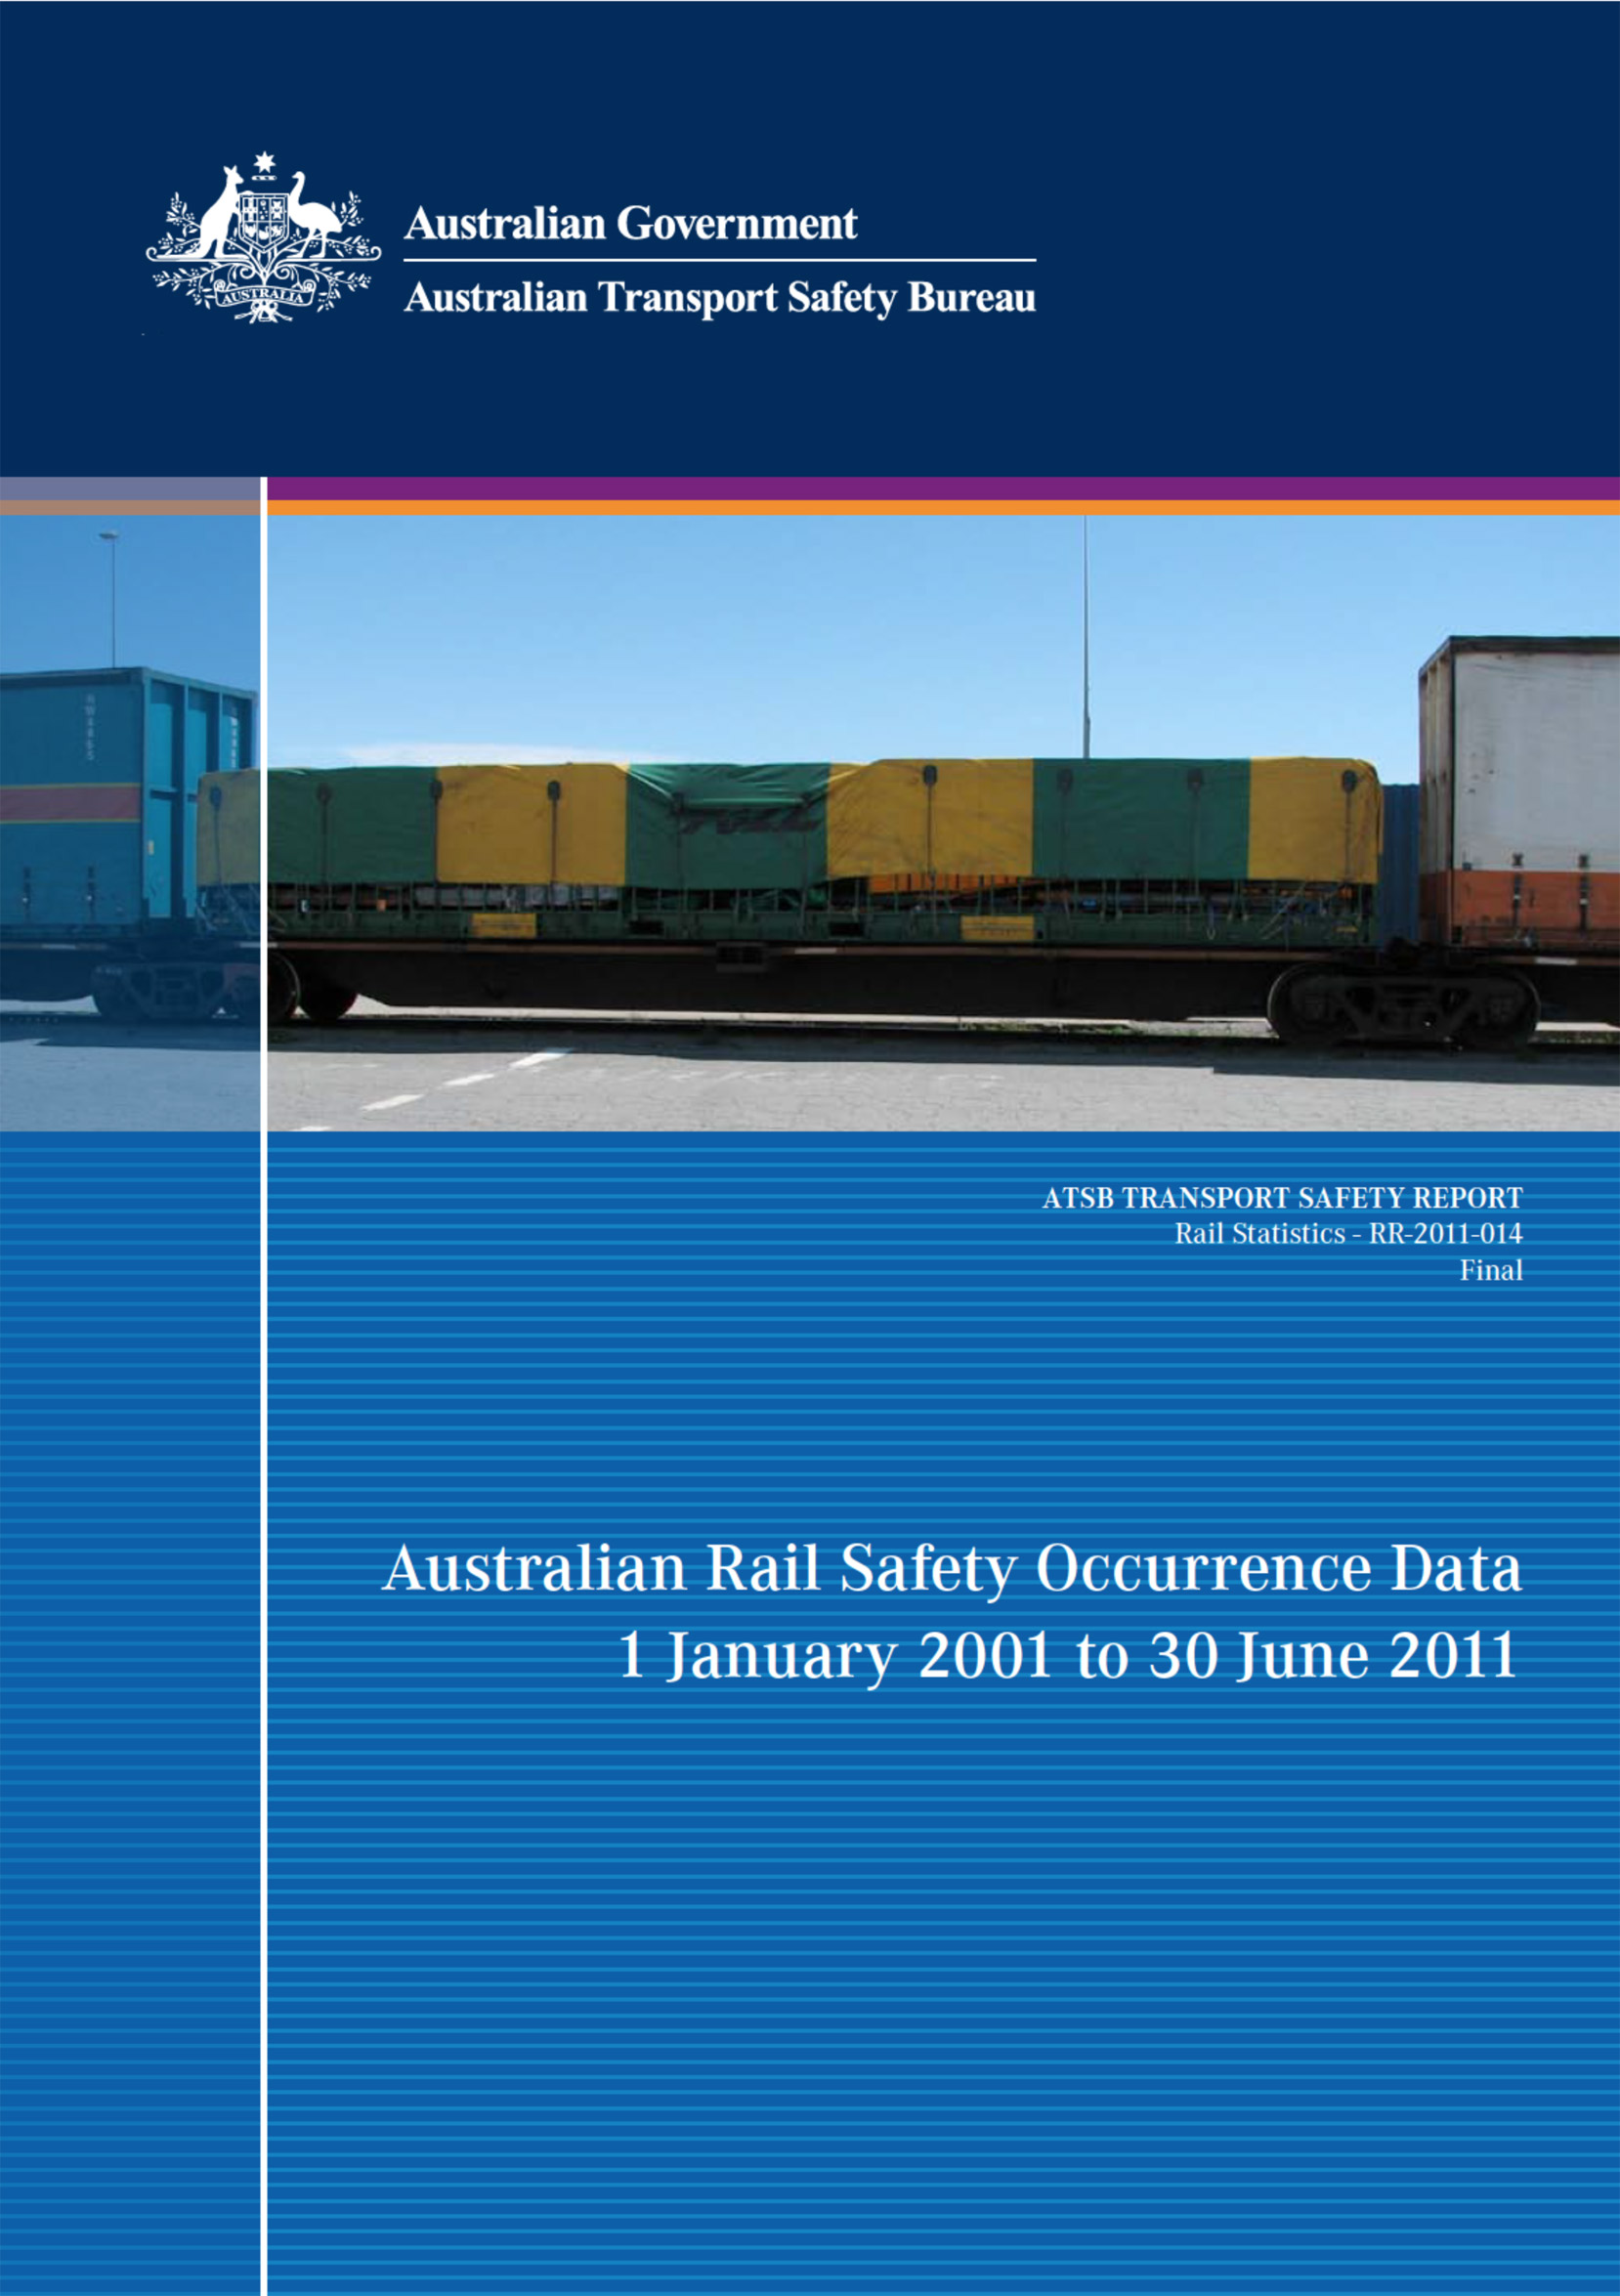 Download complete document - Australian Rail Safety Occurrence Data 1 January 2001 to 30 June 2011